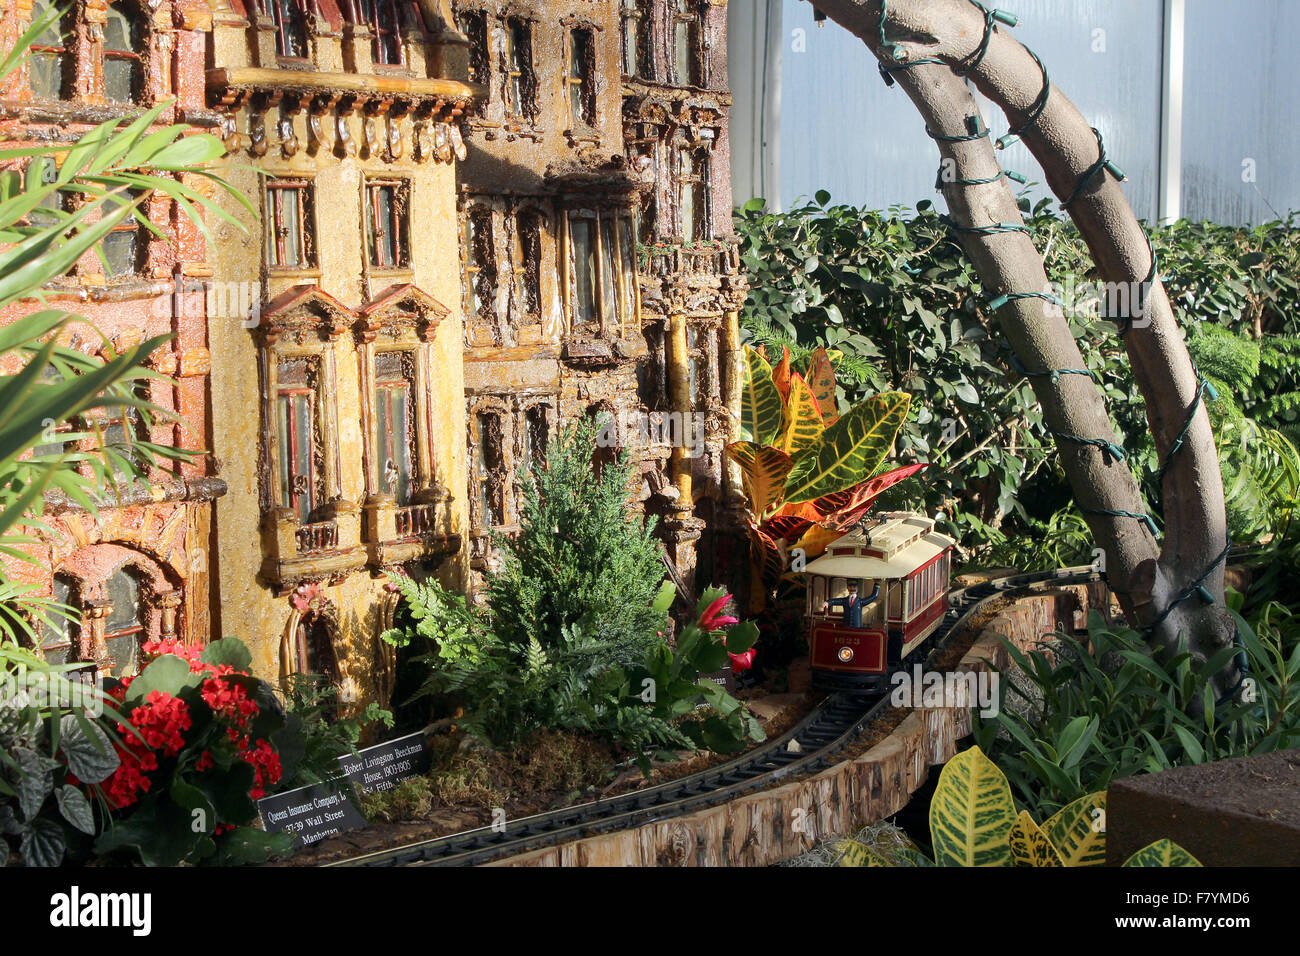 new york botanical gardens holiday train show stock image - Bronx Botanical Garden Train Show